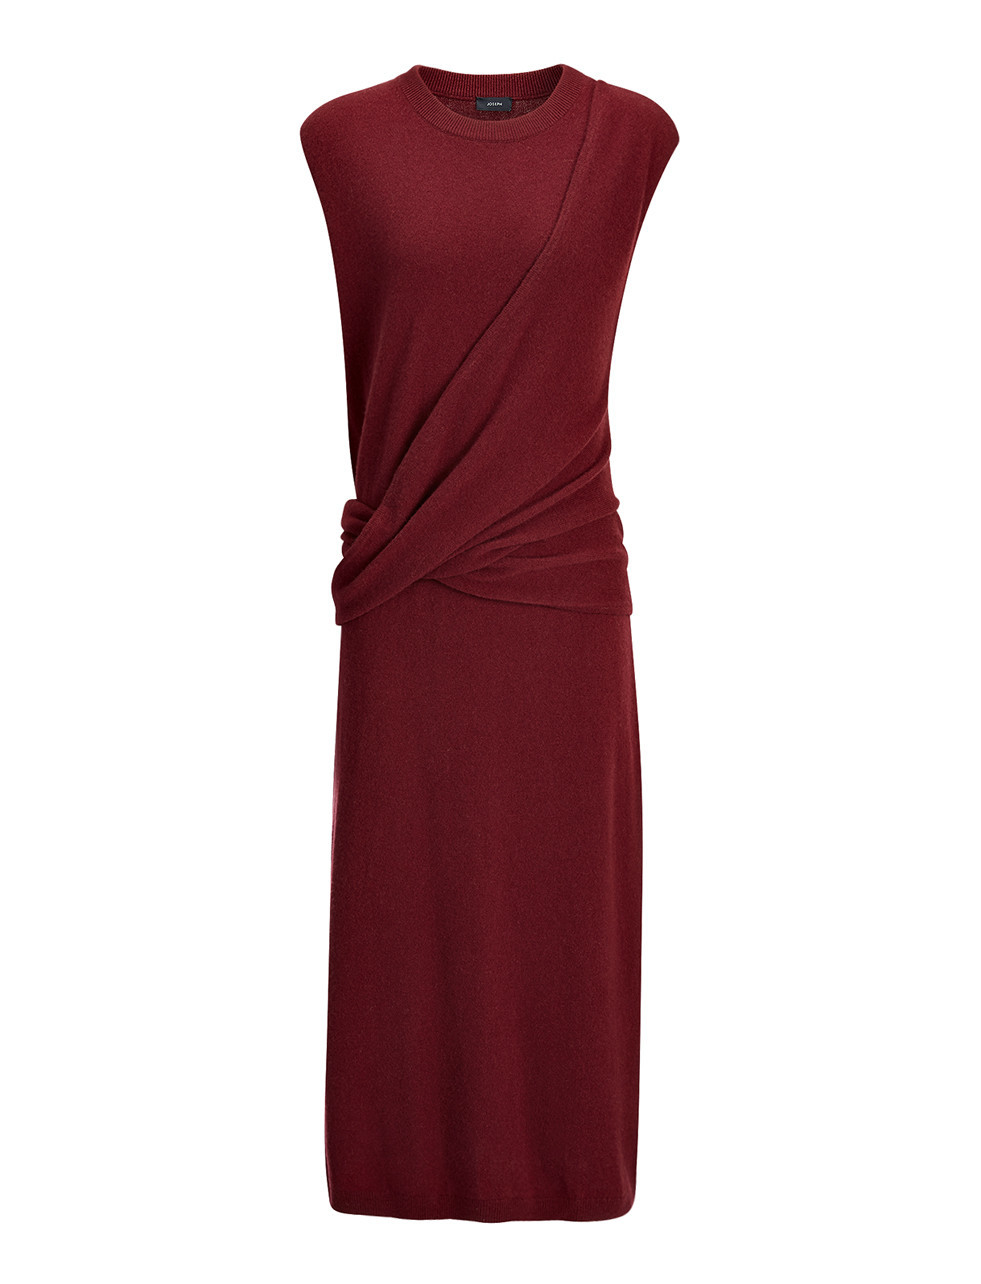 Soft Wool Feli Dress In Oxblood - style: shift; length: calf length; pattern: plain; sleeve style: sleeveless; neckline: high neck; predominant colour: burgundy; occasions: evening; fit: body skimming; fibres: wool - 100%; sleeve length: sleeveless; texture group: jersey - clingy; pattern type: fabric; season: s/s 2016; wardrobe: event